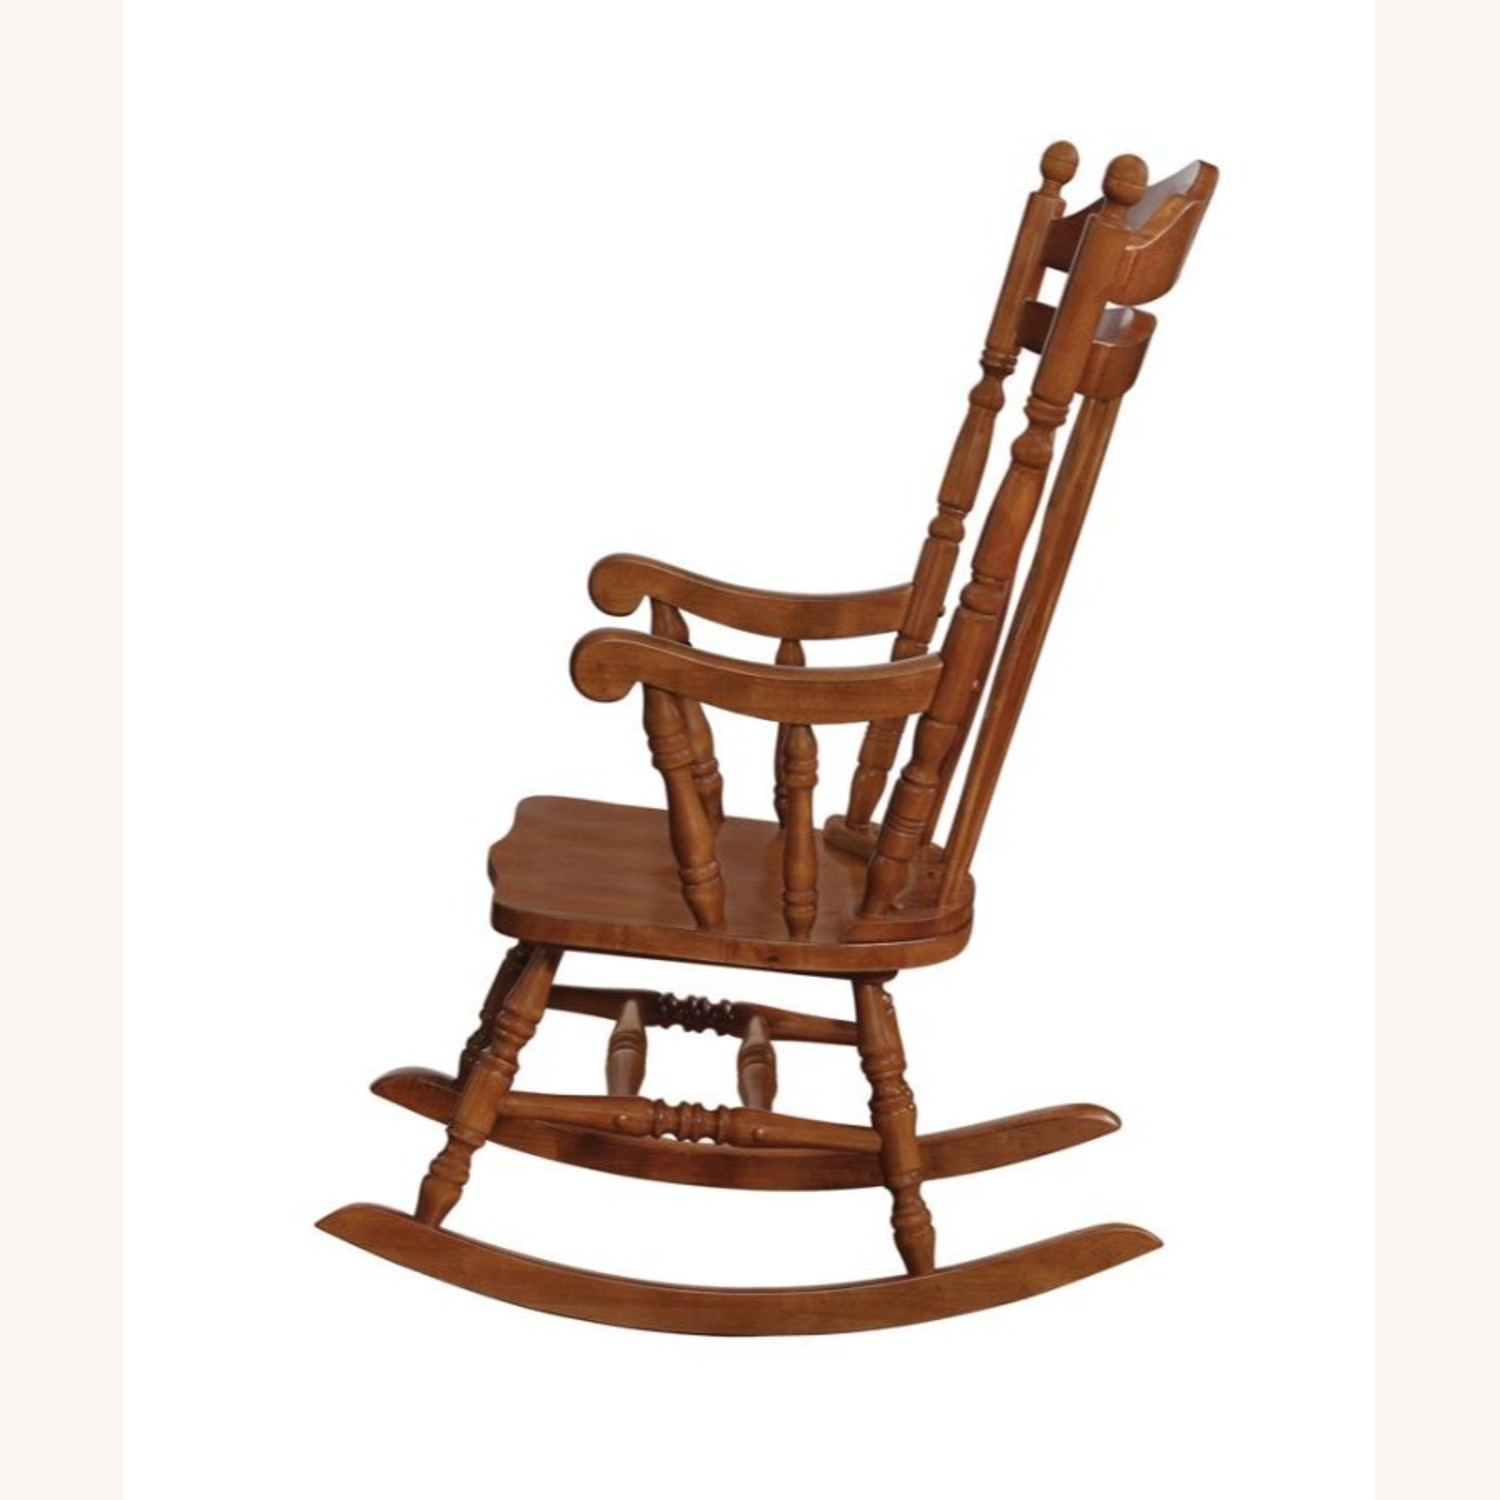 Windor Style Rocking Chair In Medium Brown Finish - image-1